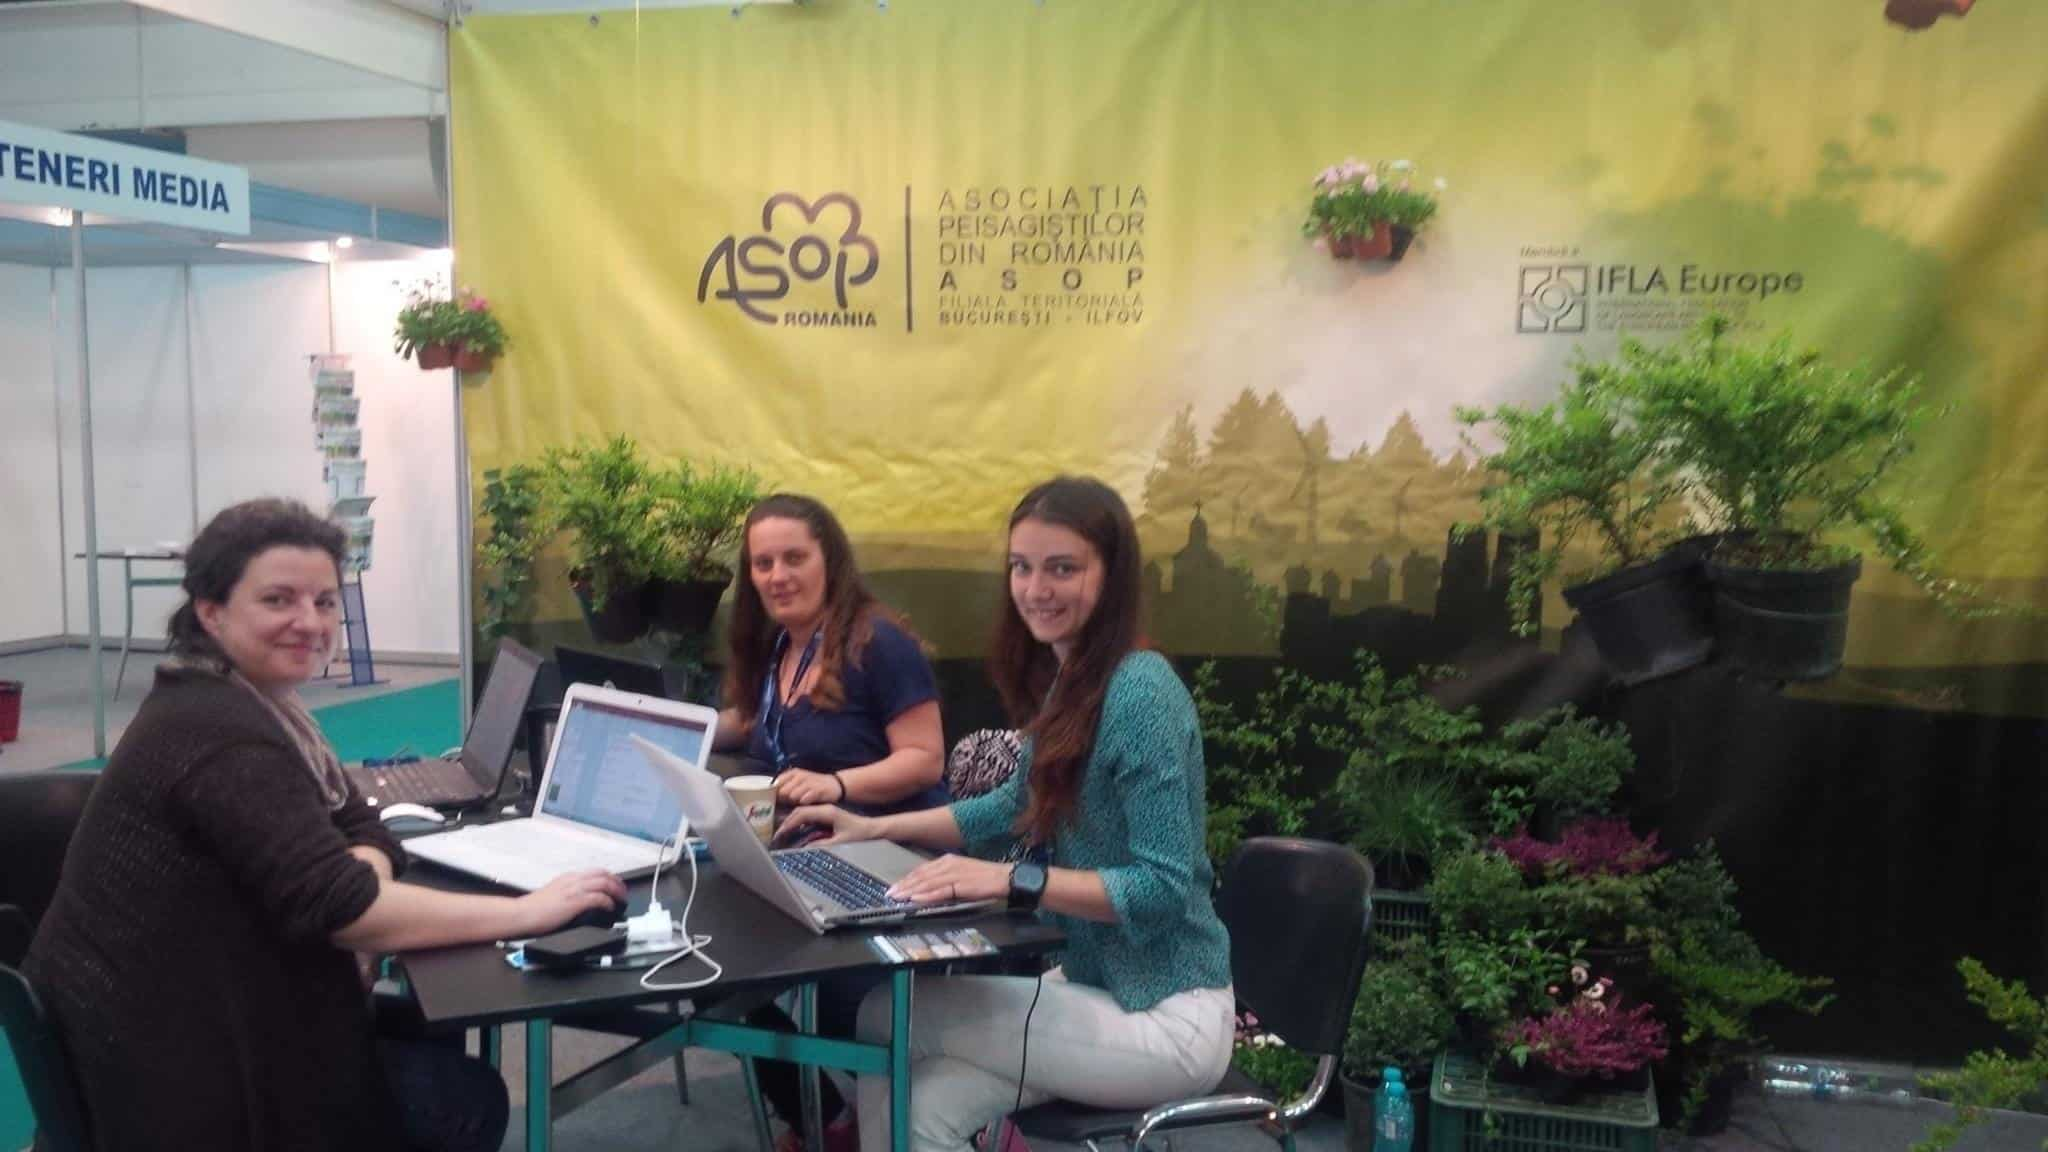 representing the professional association of Romanian landscape architects at a national exhibition (photo: AsoP Romania)